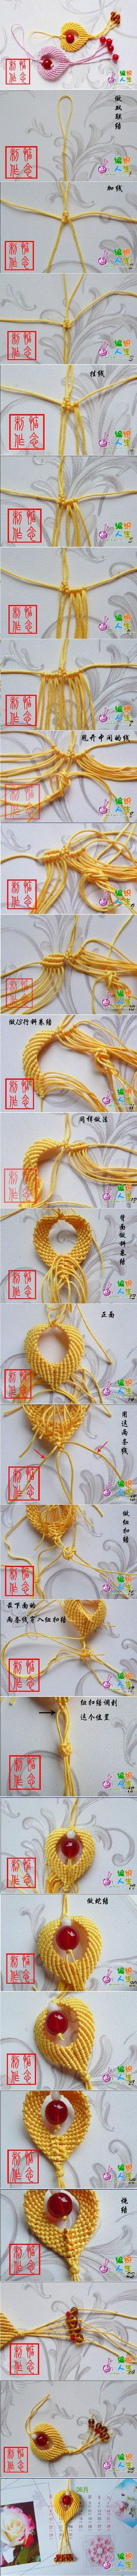 A faire pour changer des bracelets - DIY Chinese Knot Heart Ornament DIY Chinese Knot Heart Ornament